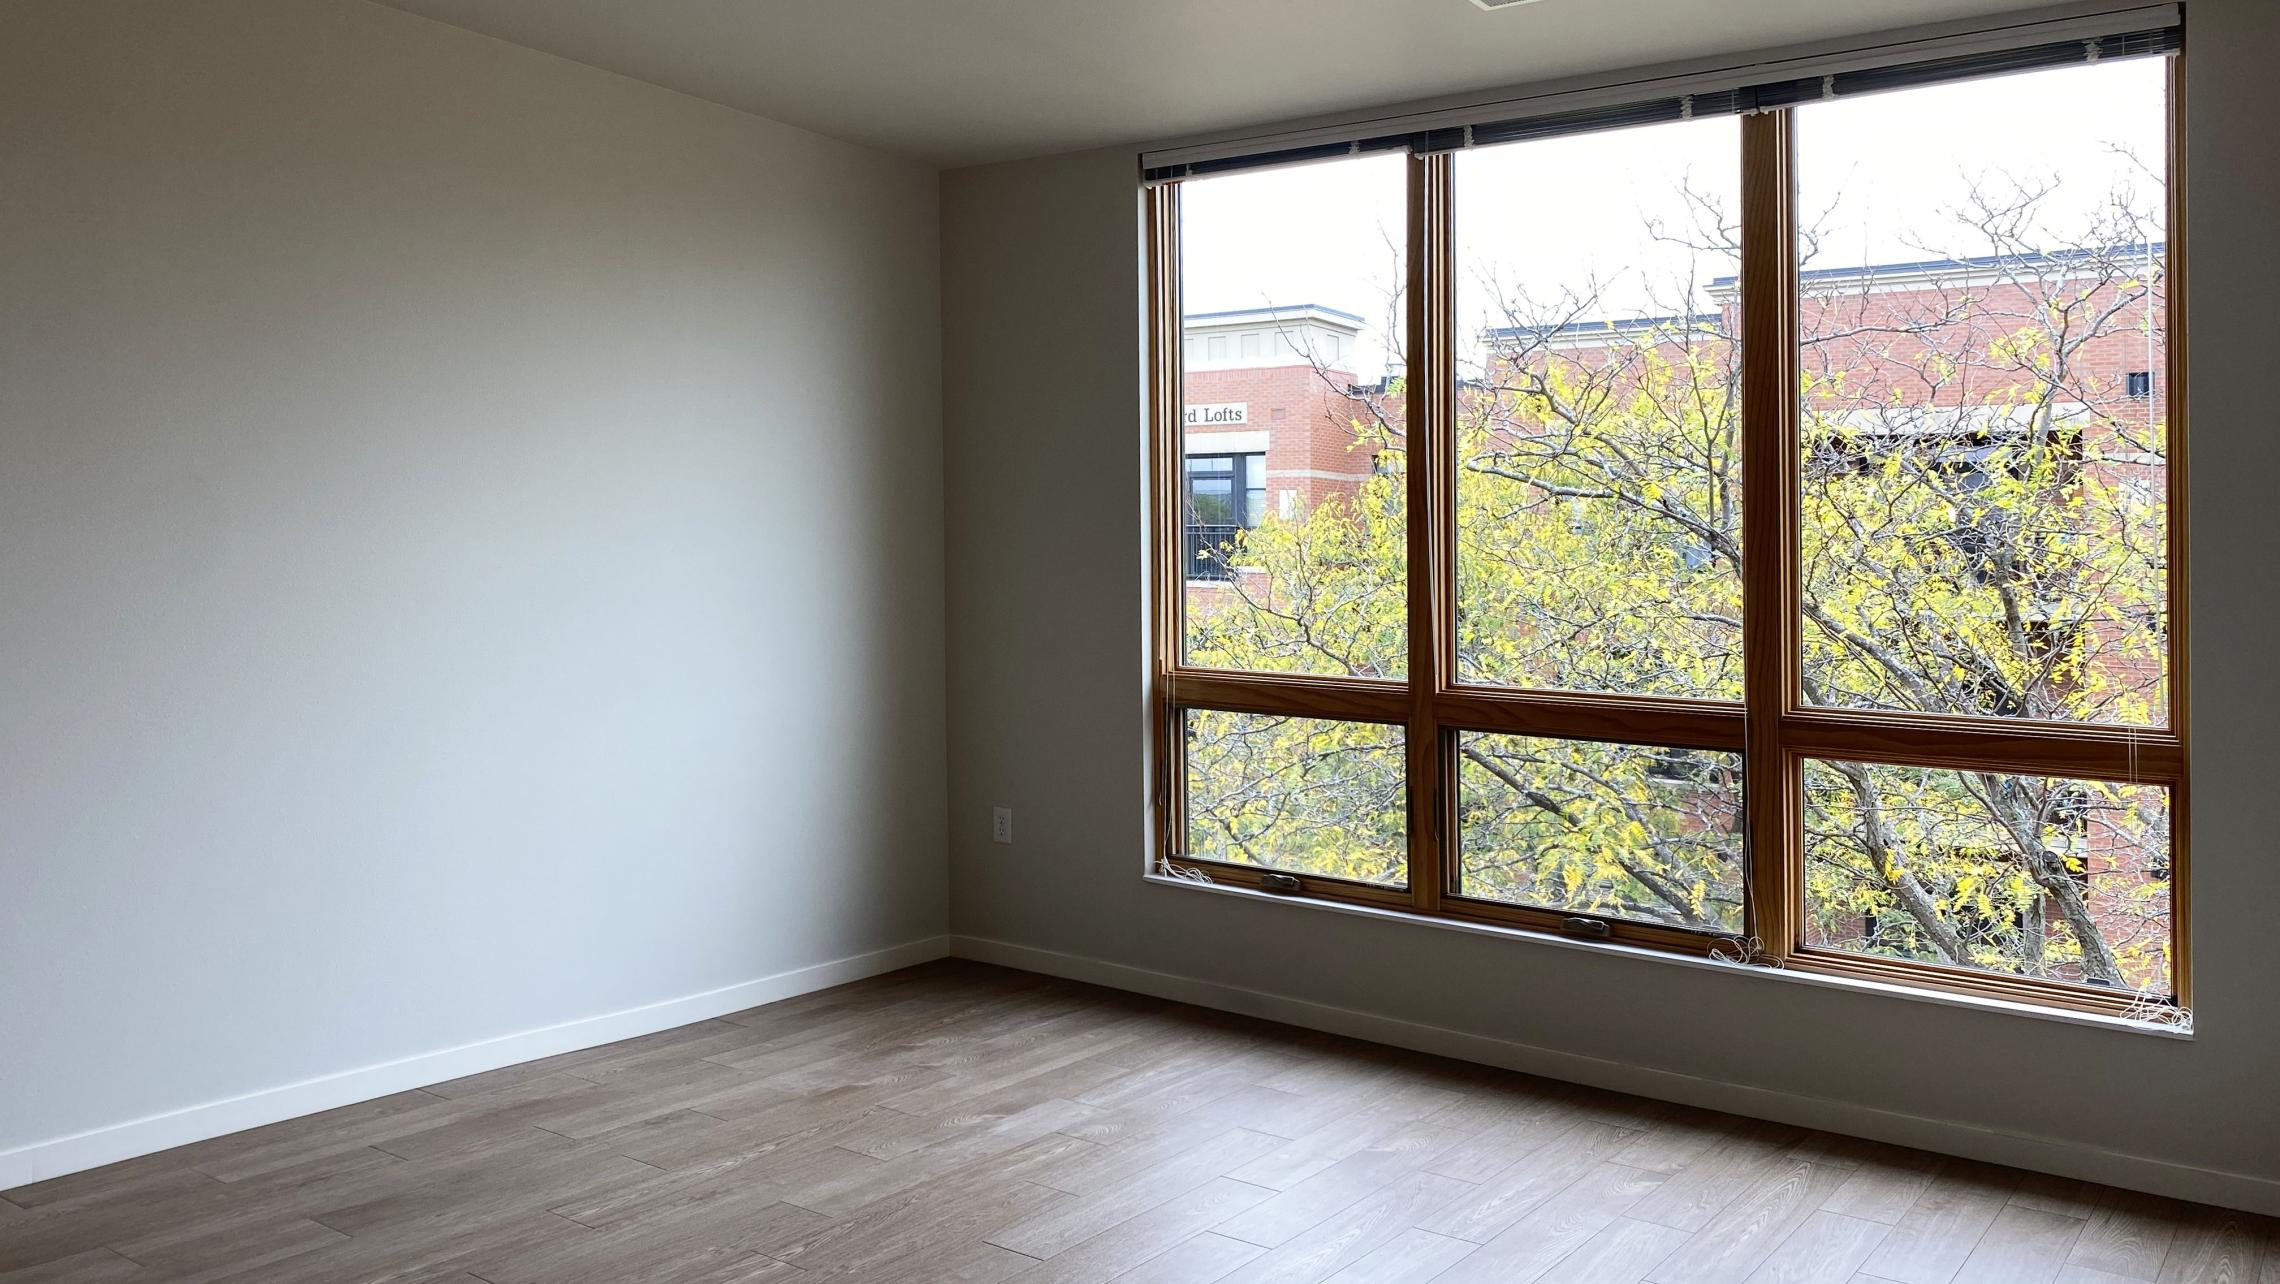 Quarter-Row-At-The-Yards-Apartment-417-Two-Bedroom-Top-Floor-Downtown-Madison-Bike-Lake-Modern-Upscale-Fitness-Terrace-Courtyard-Lounge-Coffee-Shop-Cats-Dogs-Lifestyle